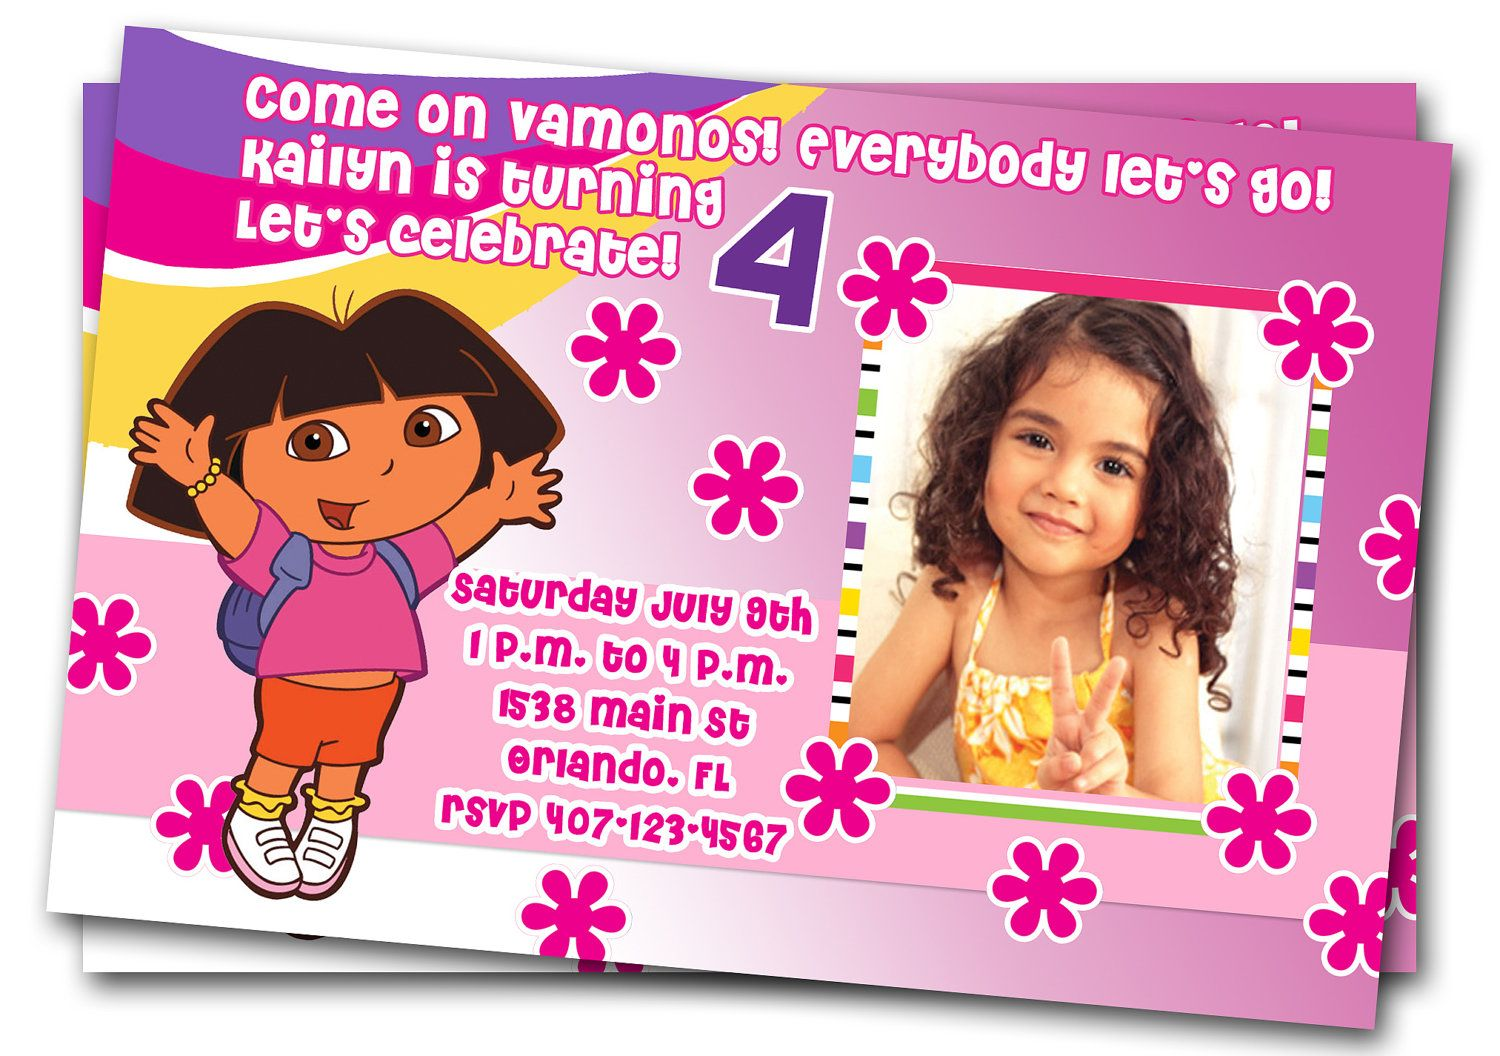 Dora birthday ideas toddlers dora birthday invitations printable dora birthday ideas toddlers dora birthday invitations printable custom party by thepartystork filmwisefo Choice Image